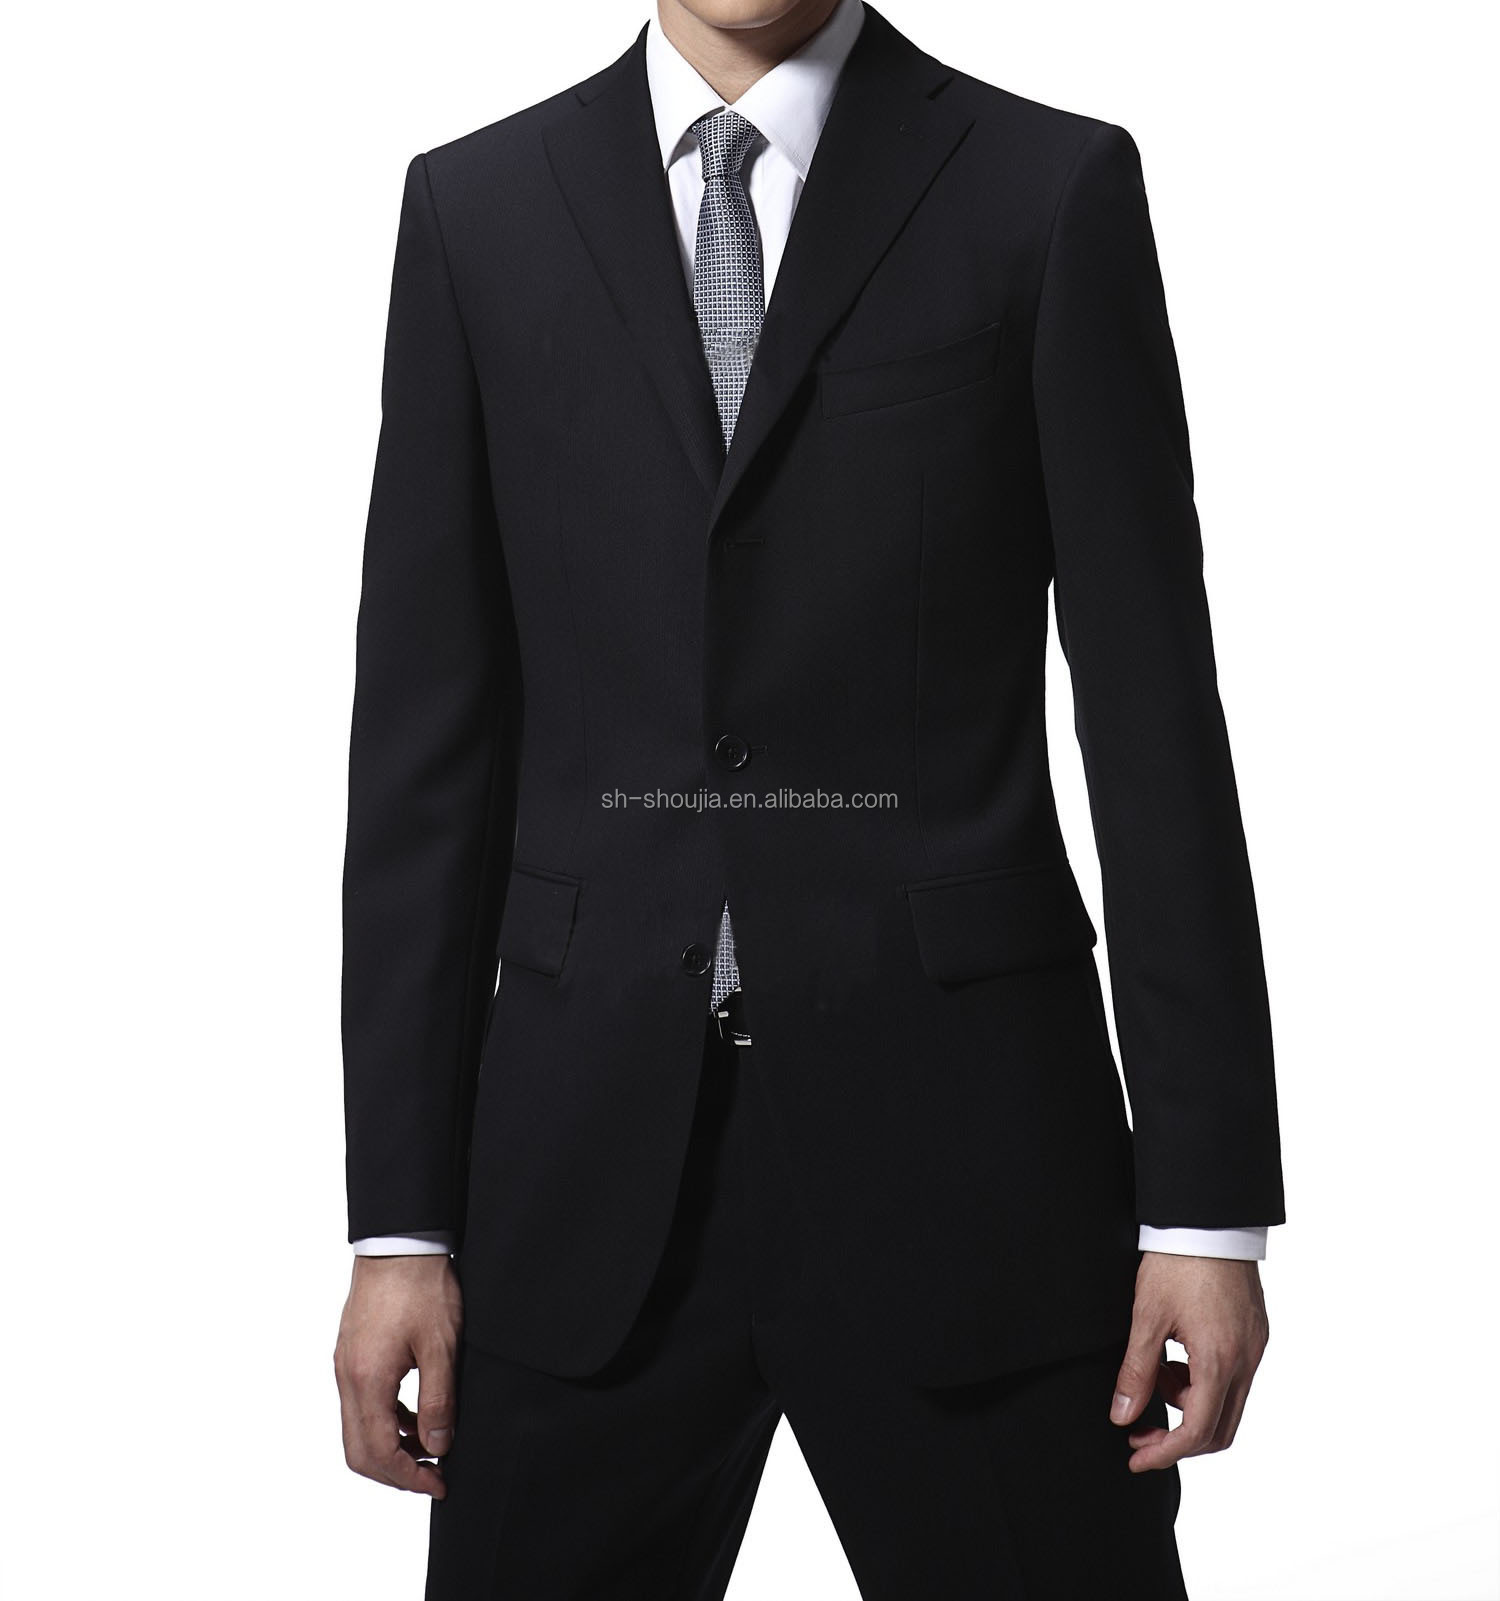 mens suits,bright color mens suits